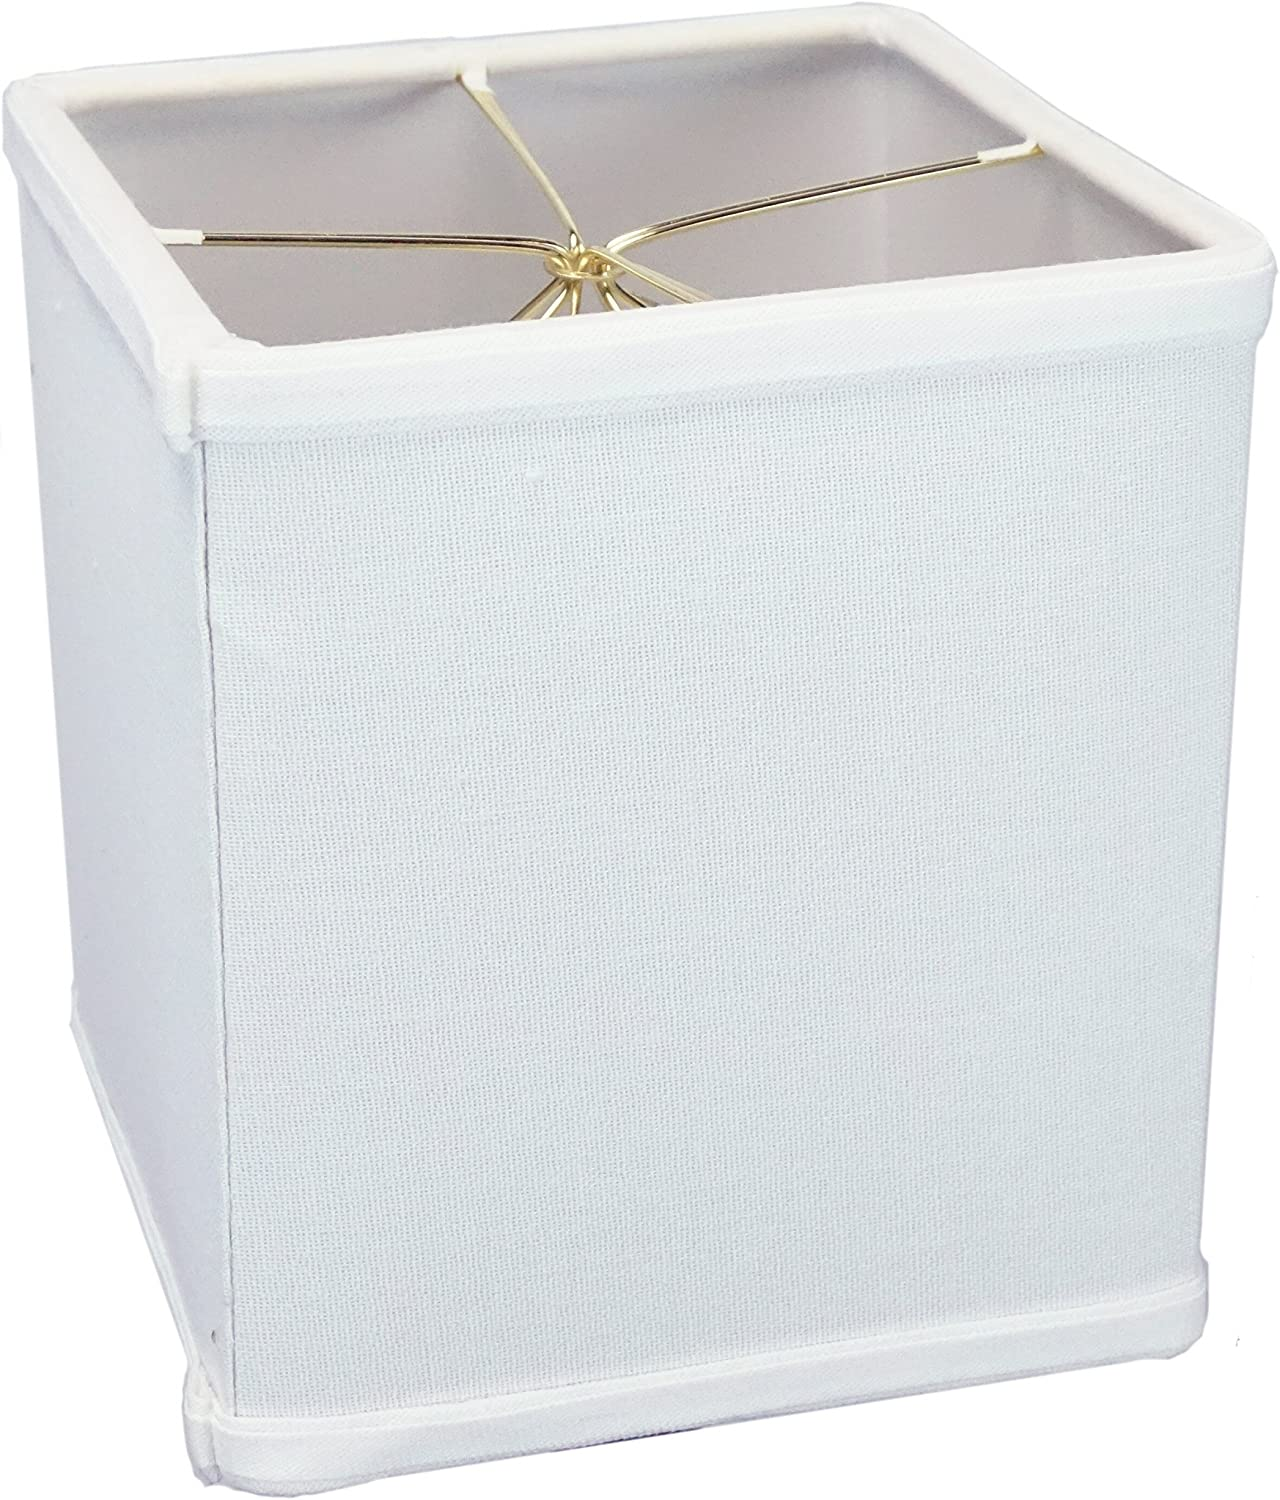 Time sale 6x6x7 White Square Drum Lampshade Linen Small - Max 58% OFF for Perfect Tabl